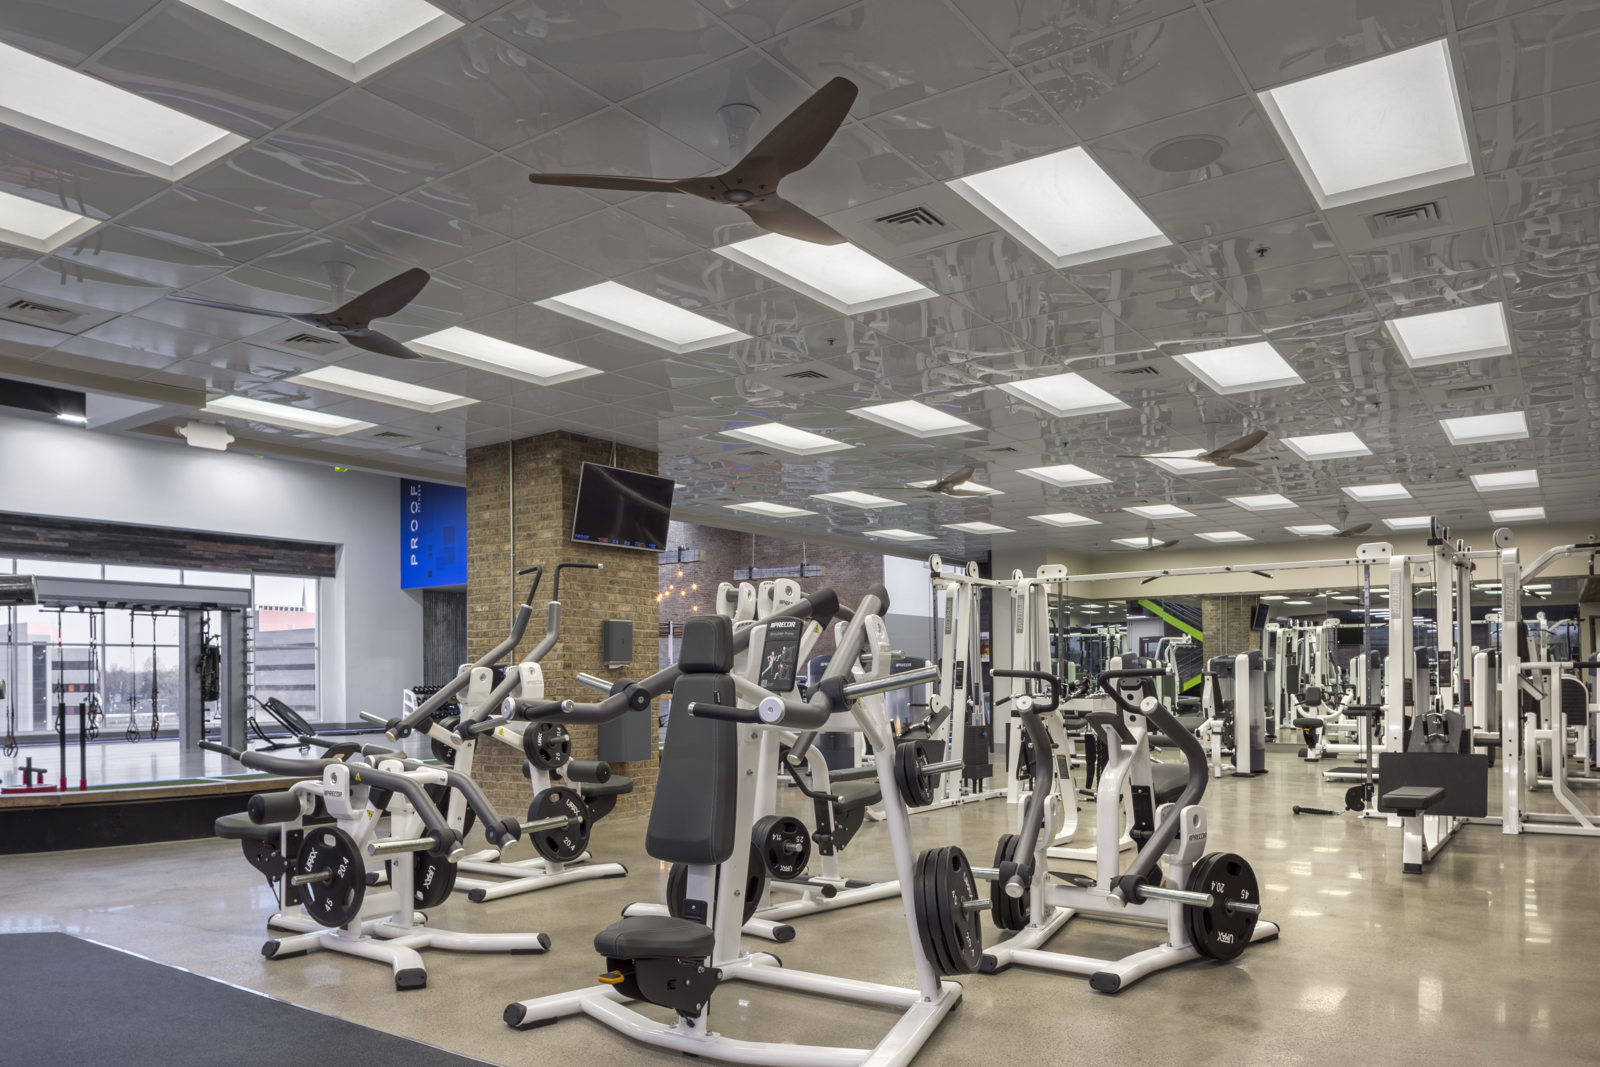 Proof Fitness located in downtown Lexington provides world-class facilities with a five-star concierge service.